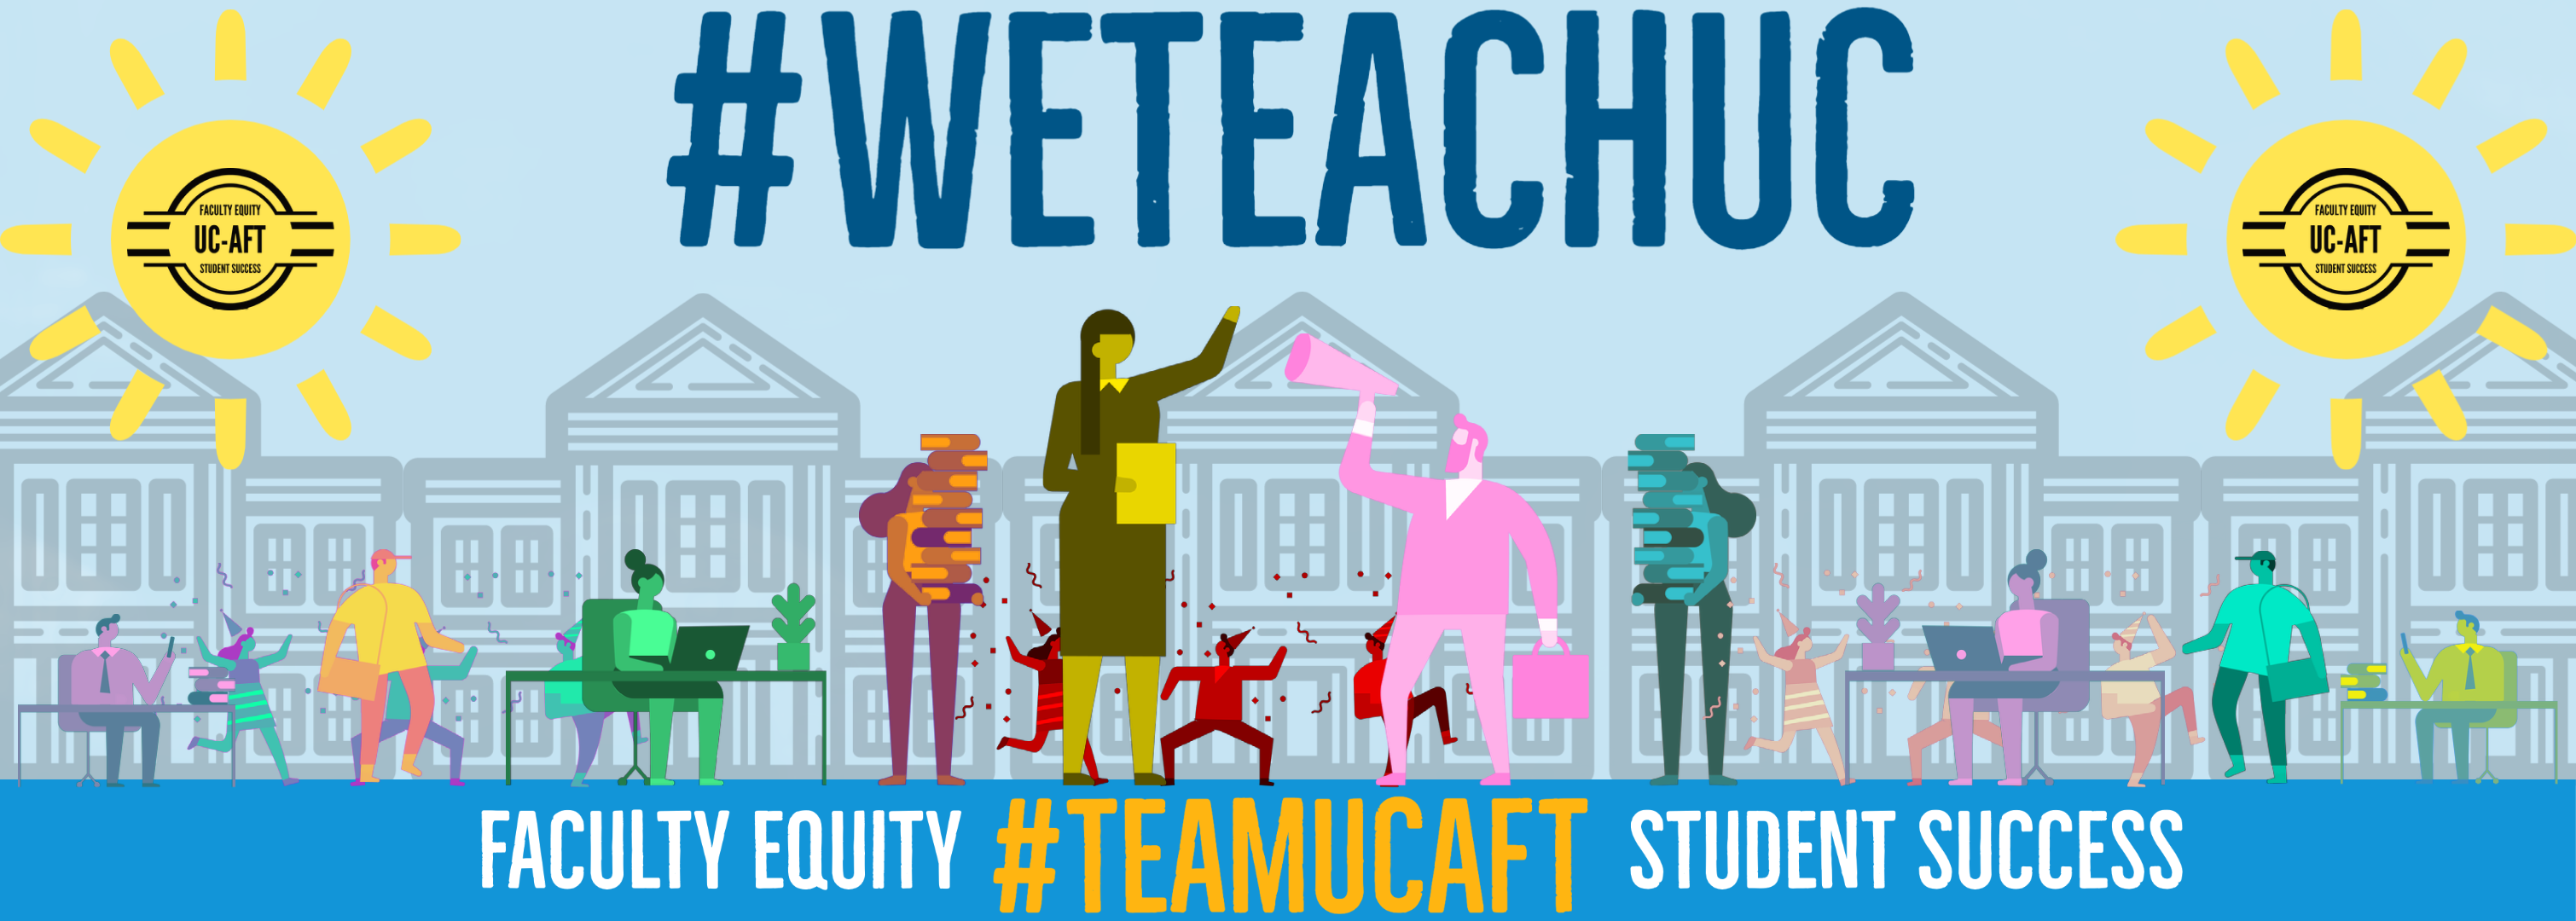 We Teach UC - Faculty Equity Student Success